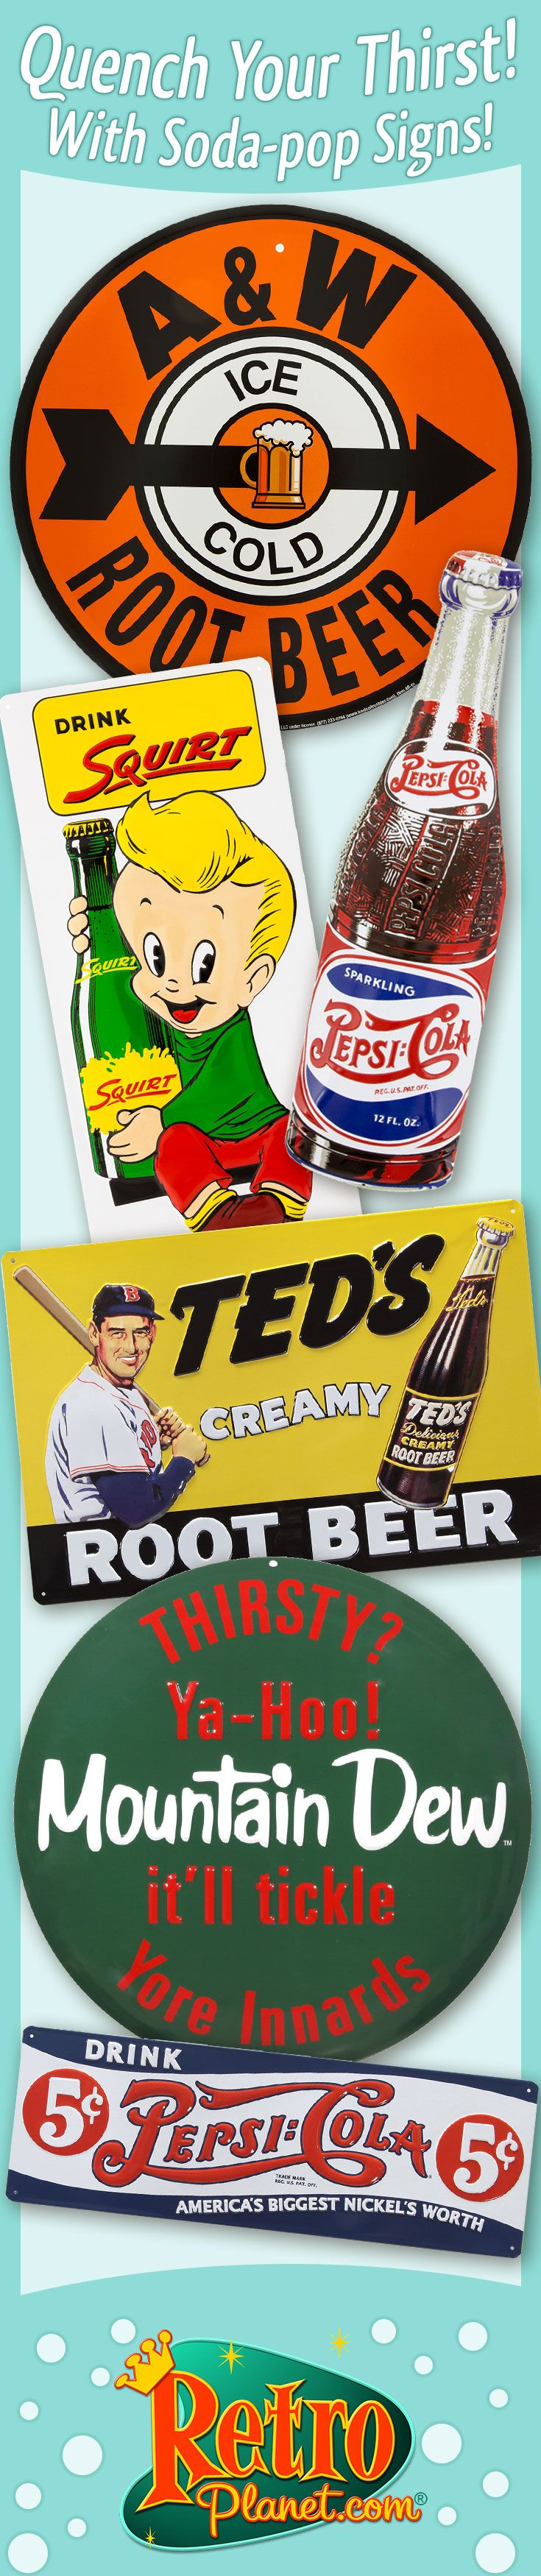 Create your own old-time soda shop with these quality reproductions! Featuring vintage-style advertising for A&W Root Beer, Mountain Dew, Moxie and more, these metal signs add cool retro style to a kitchen, restaurant or work lunch room.